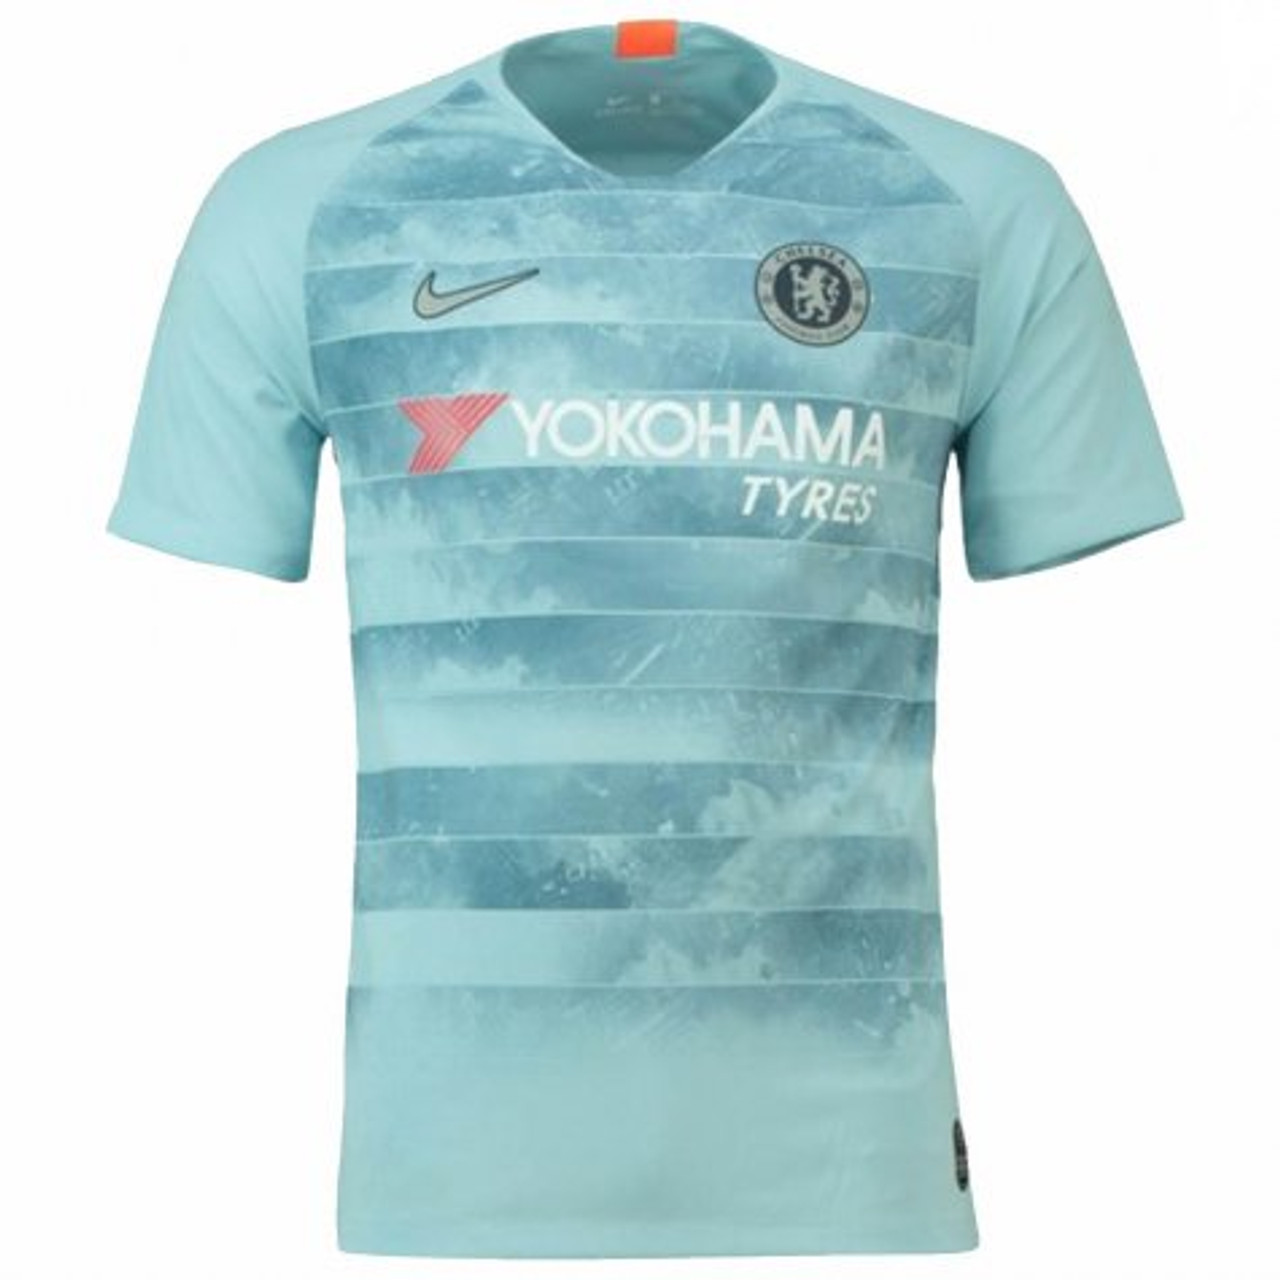 new style 694a0 cc411 NIKE CHELSEA 2019 3RD JERSEY Ocean Bliss/Metallic Silver